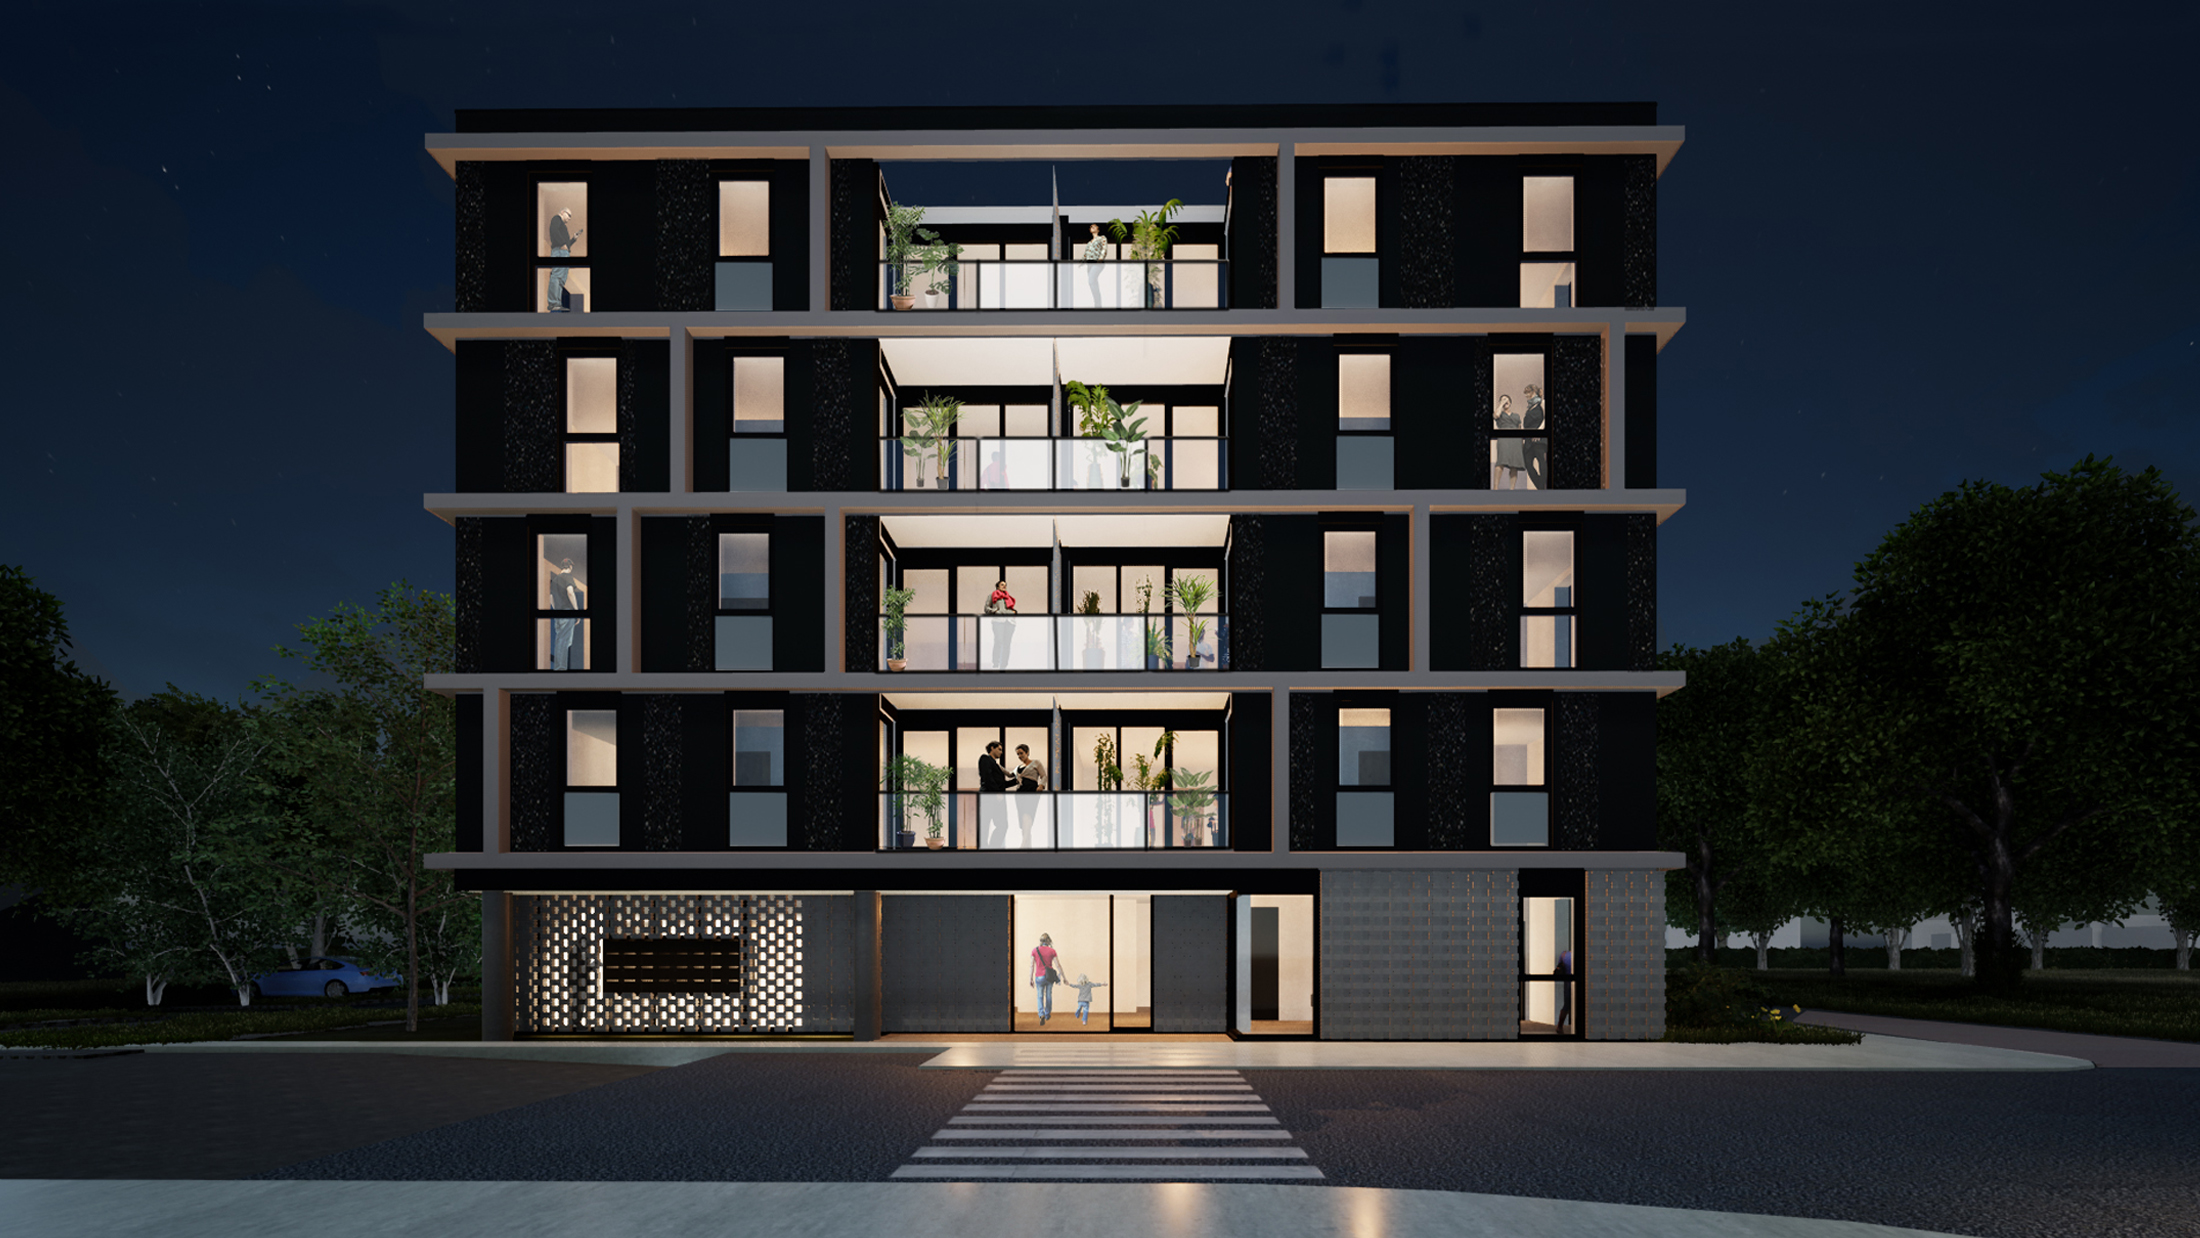 De Meker is a new residential building with 32 apartments in the social housing sector. It will be the last constructed block in the urban district Veerse Poort in Middelburg, and it is located on the border of the adjacent Nieuw Middelburg district. The unique position between the two districts adds to the spatial urban quality of the apartment block.